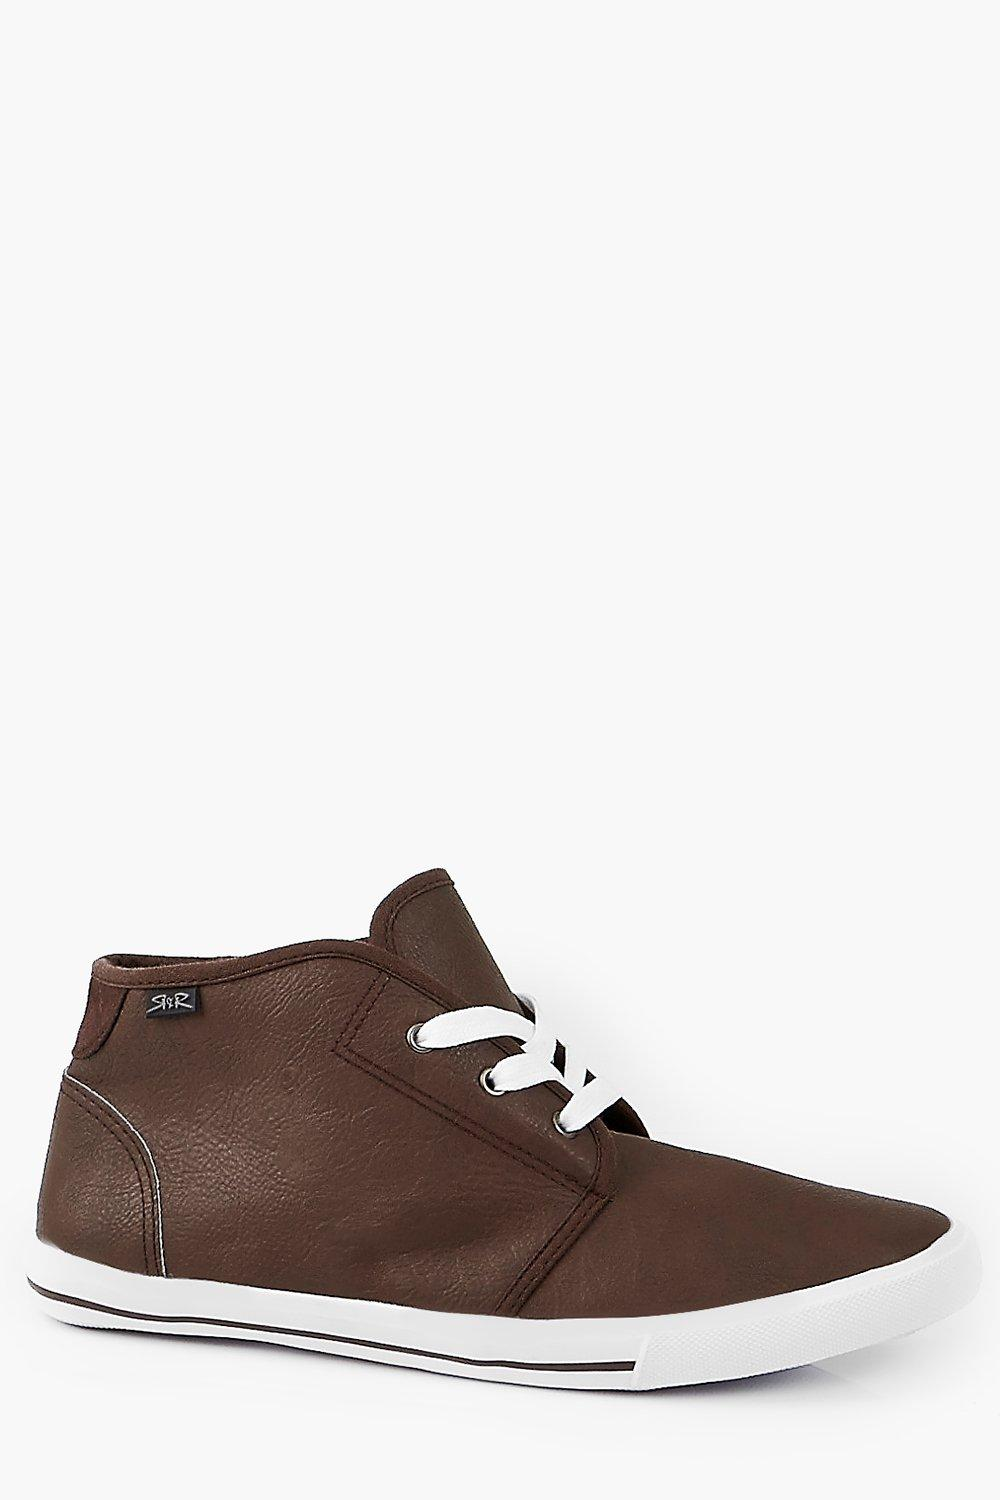 Leather Look Chukka Boot With Suede Trim